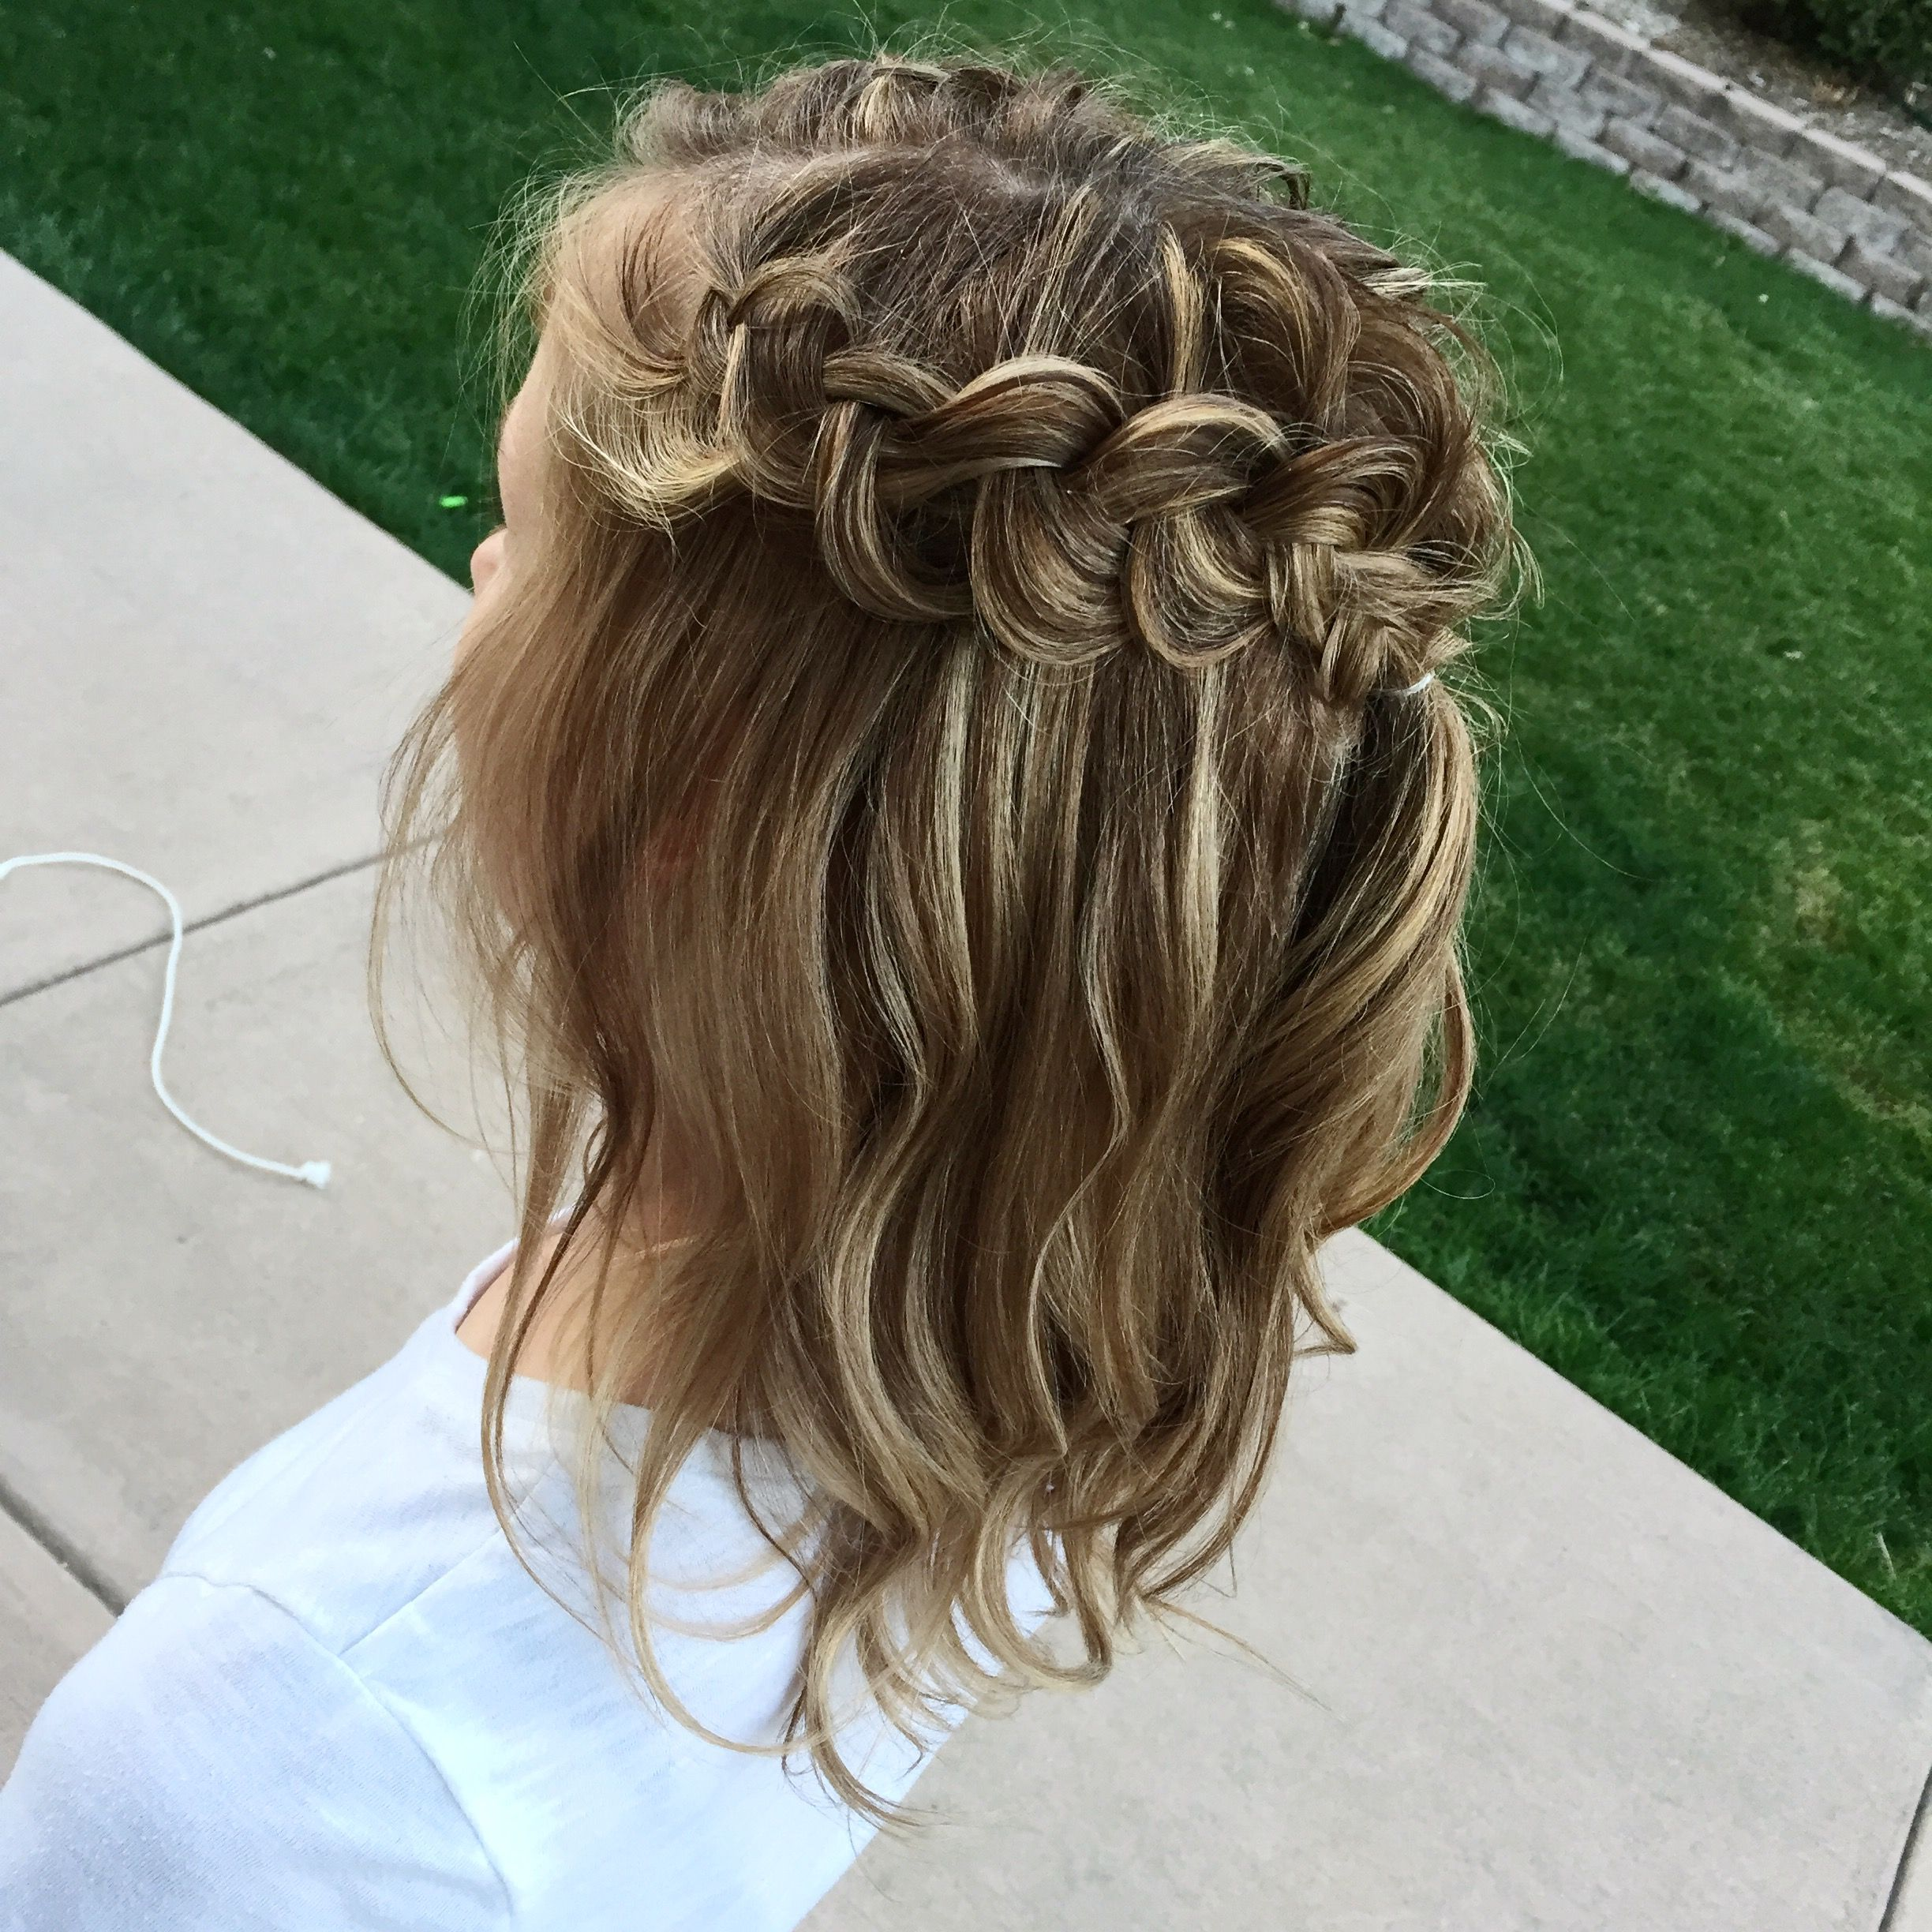 Half Up Style Dutch Braid Instagram Hailey Hagler With Images